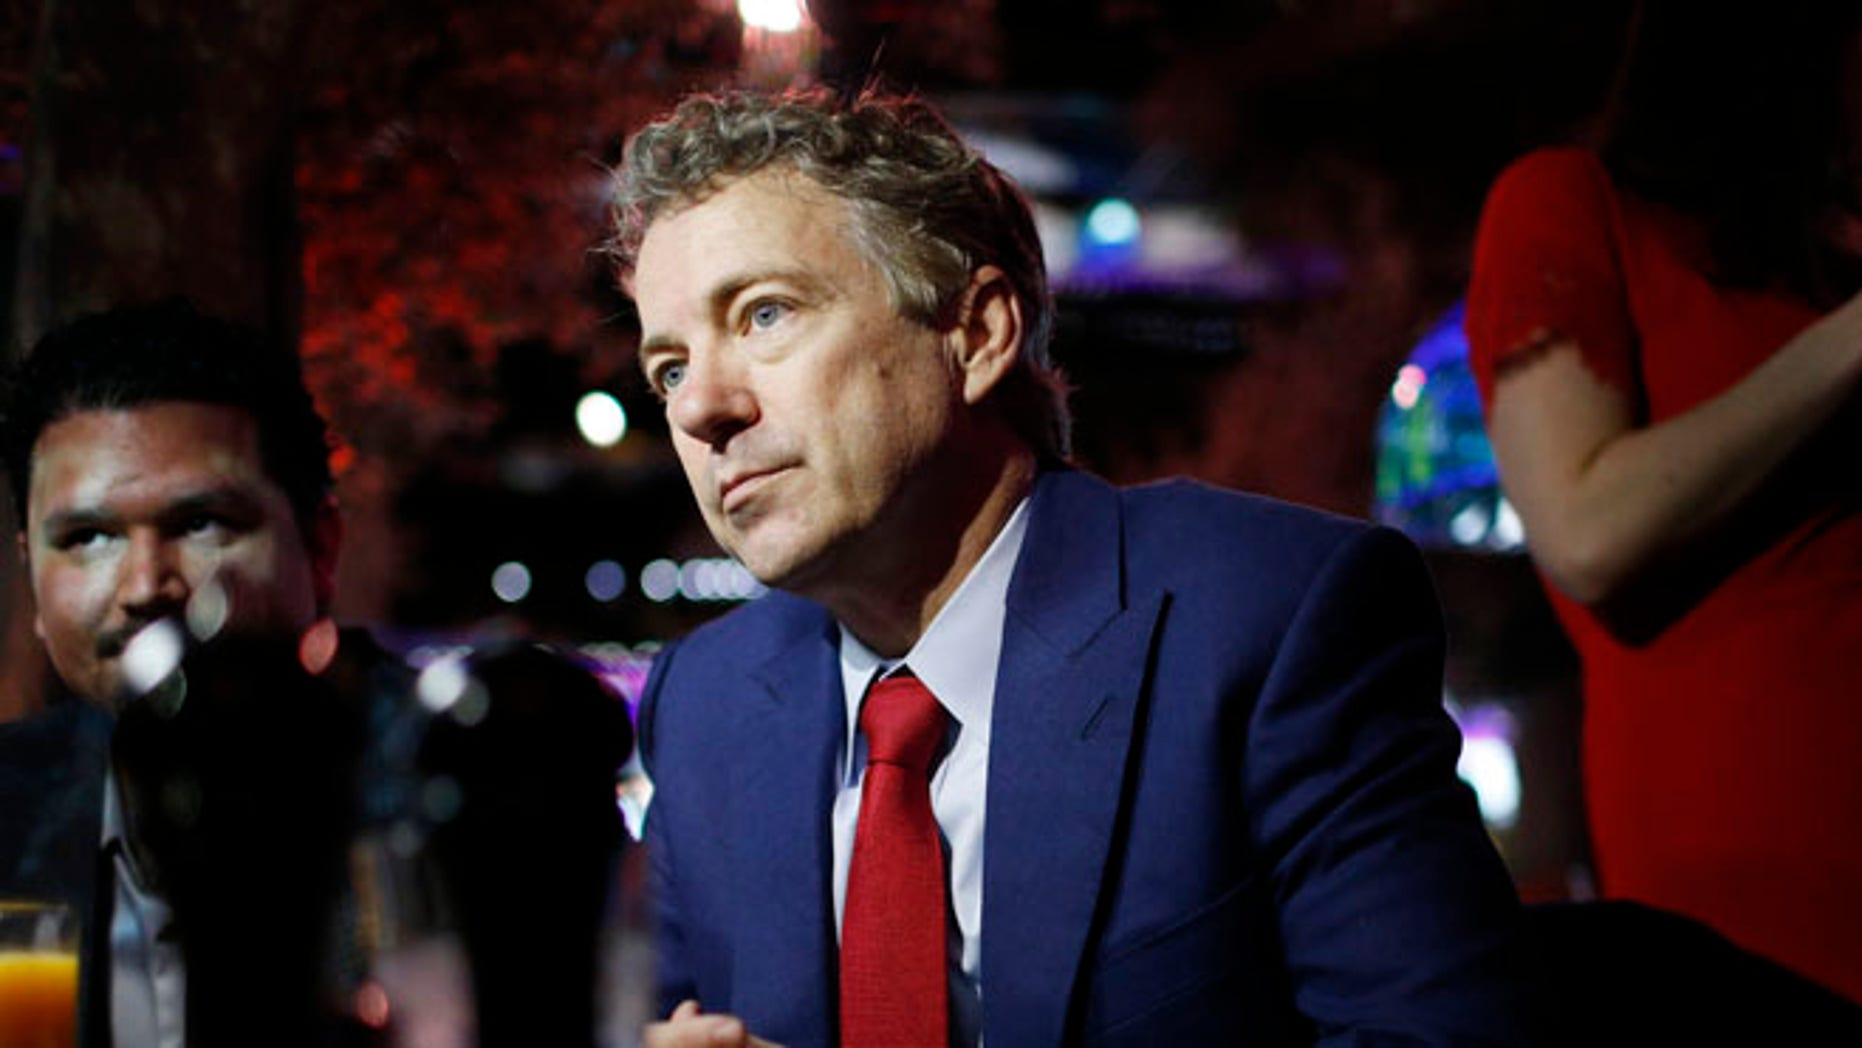 FILE: Jan. 16, 2015: Sen. Rand Paul, R-Ky., speaks with people at a restaurant in Las Vegas, Nevada.